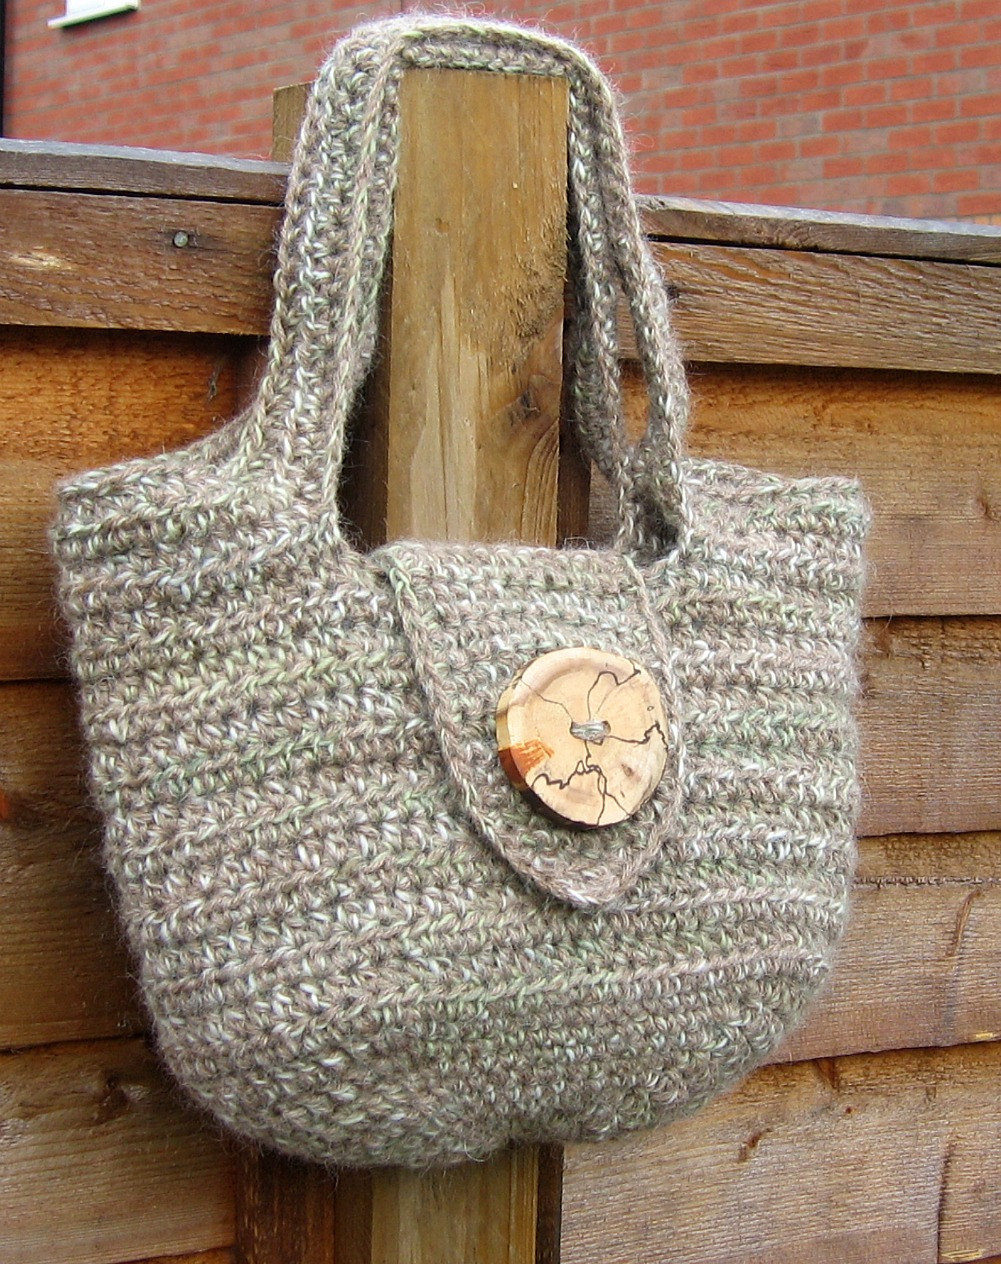 Unique A Blade Of Grass Free Crochet Pattern the Pipistrelle Crochet tote Pattern Of New 42 Pics Crochet tote Pattern